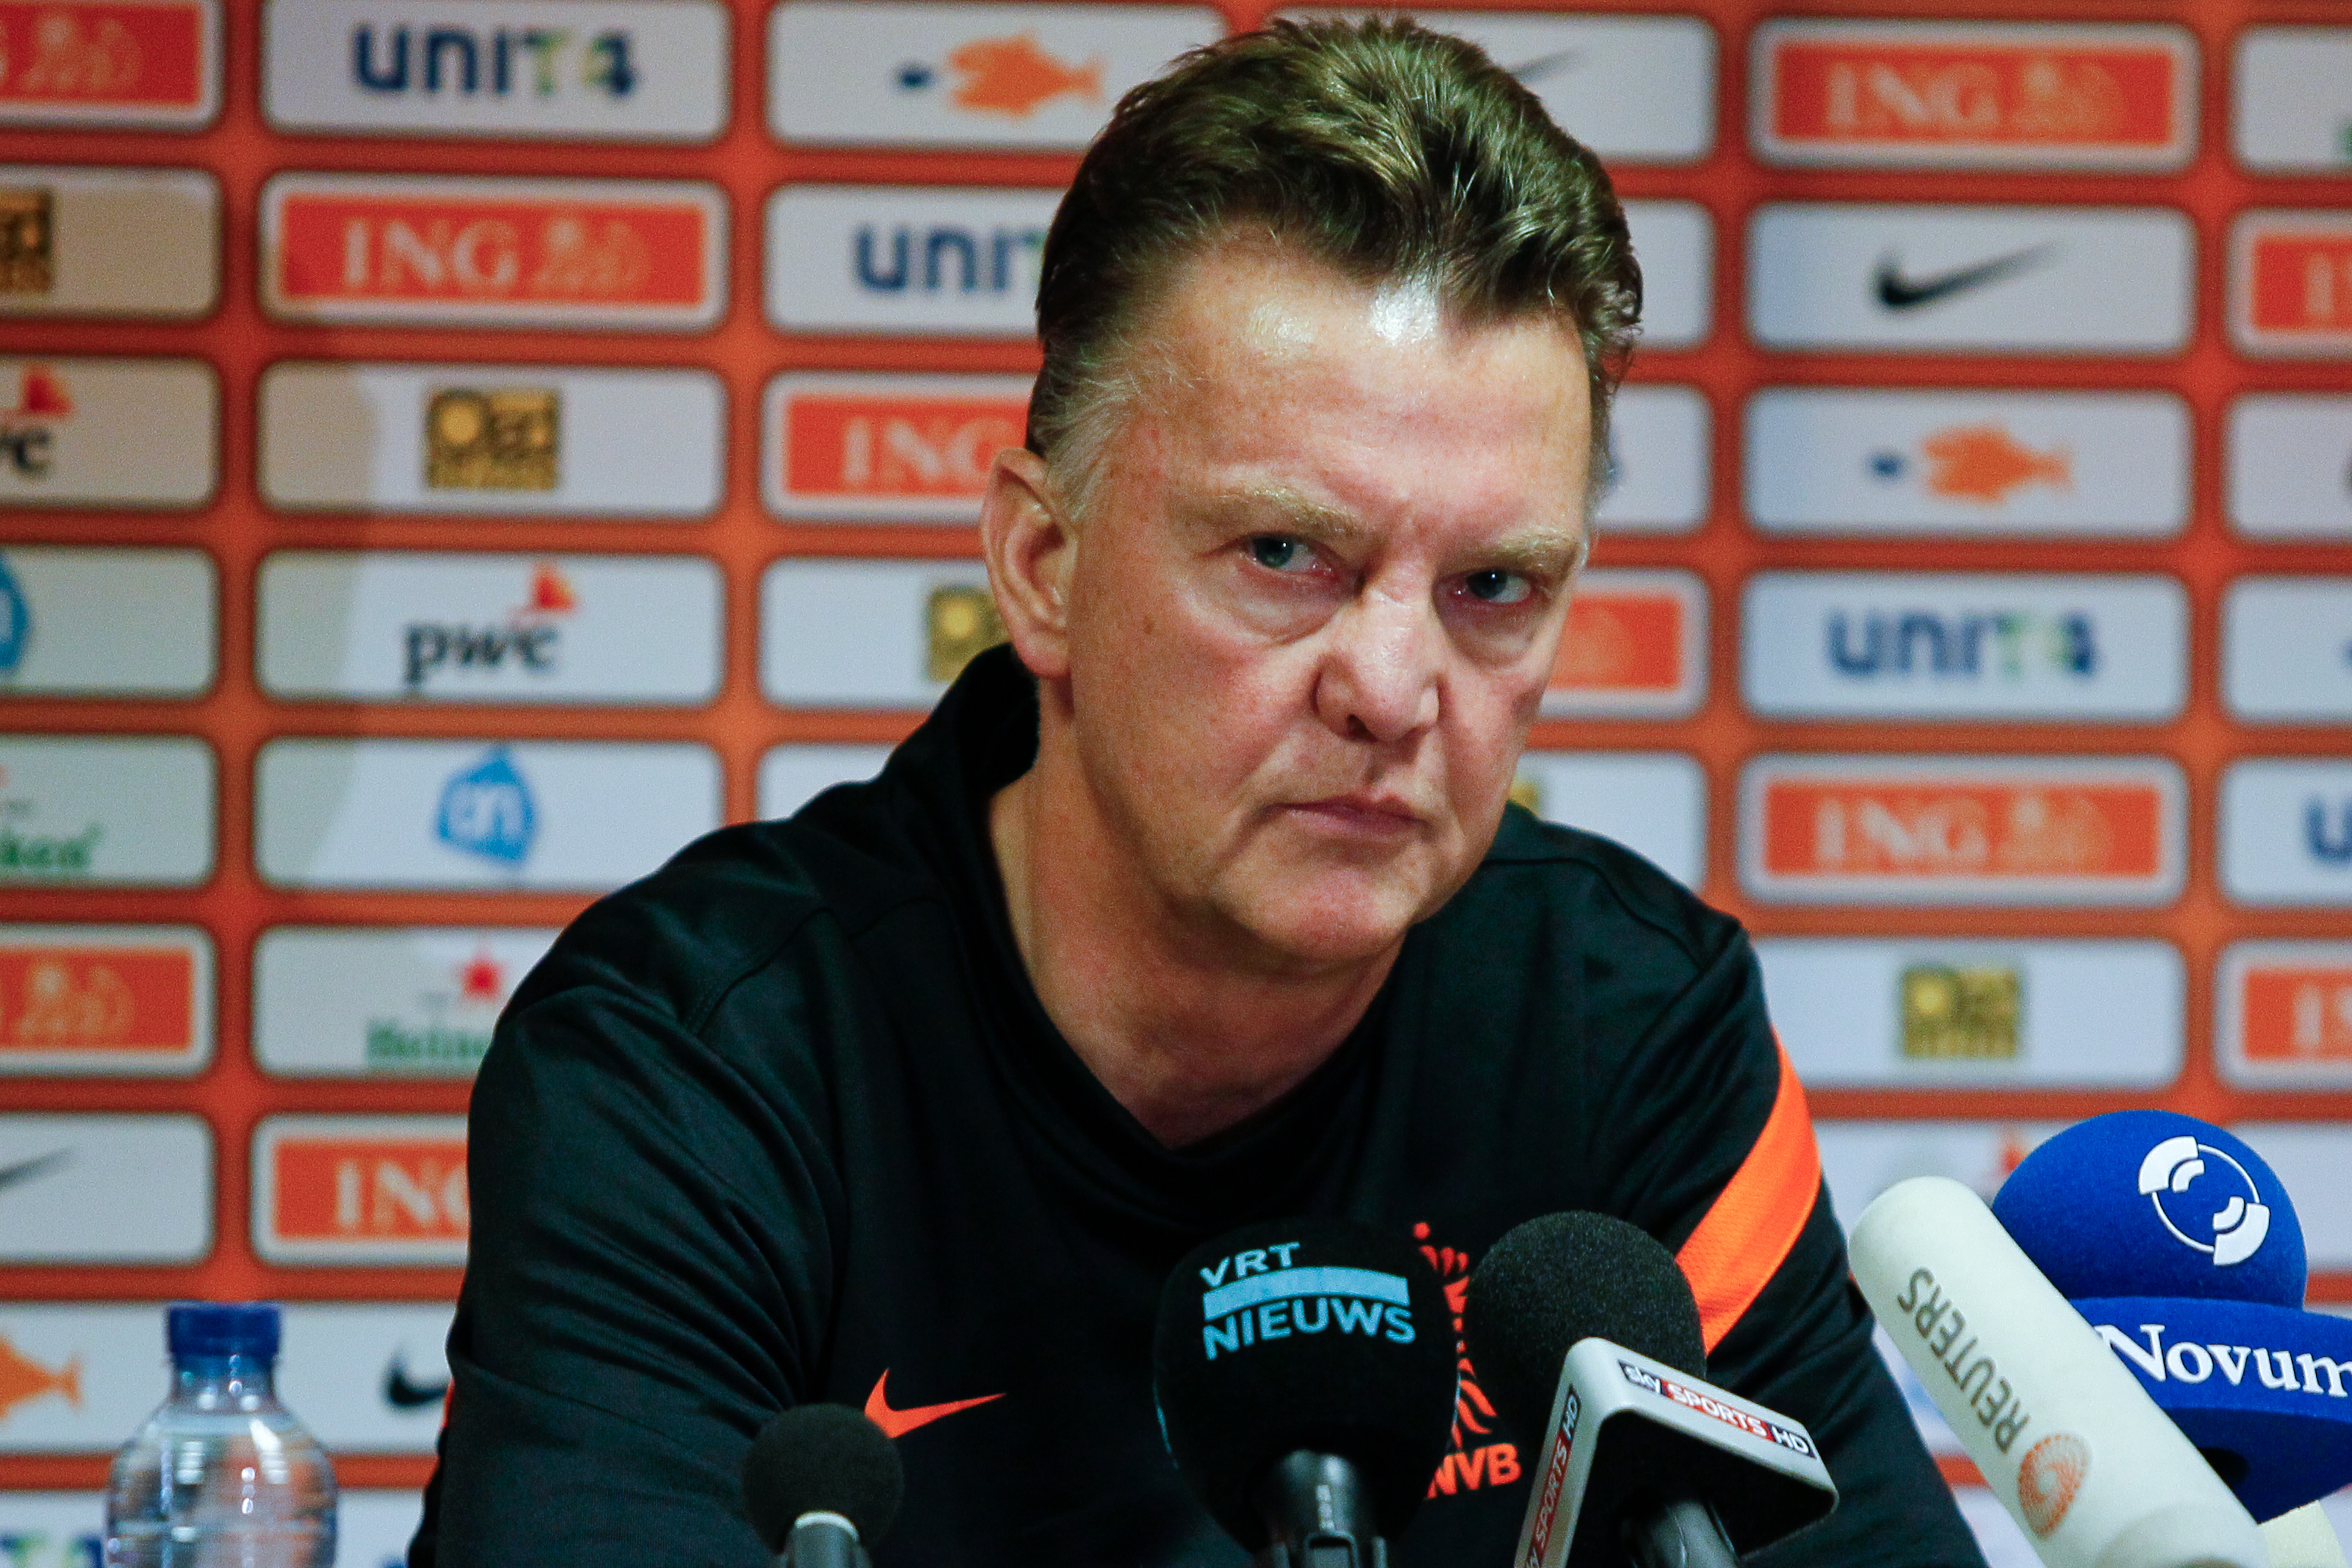 It's true! Louis van Gaal DID drop his trousers in front of players during row